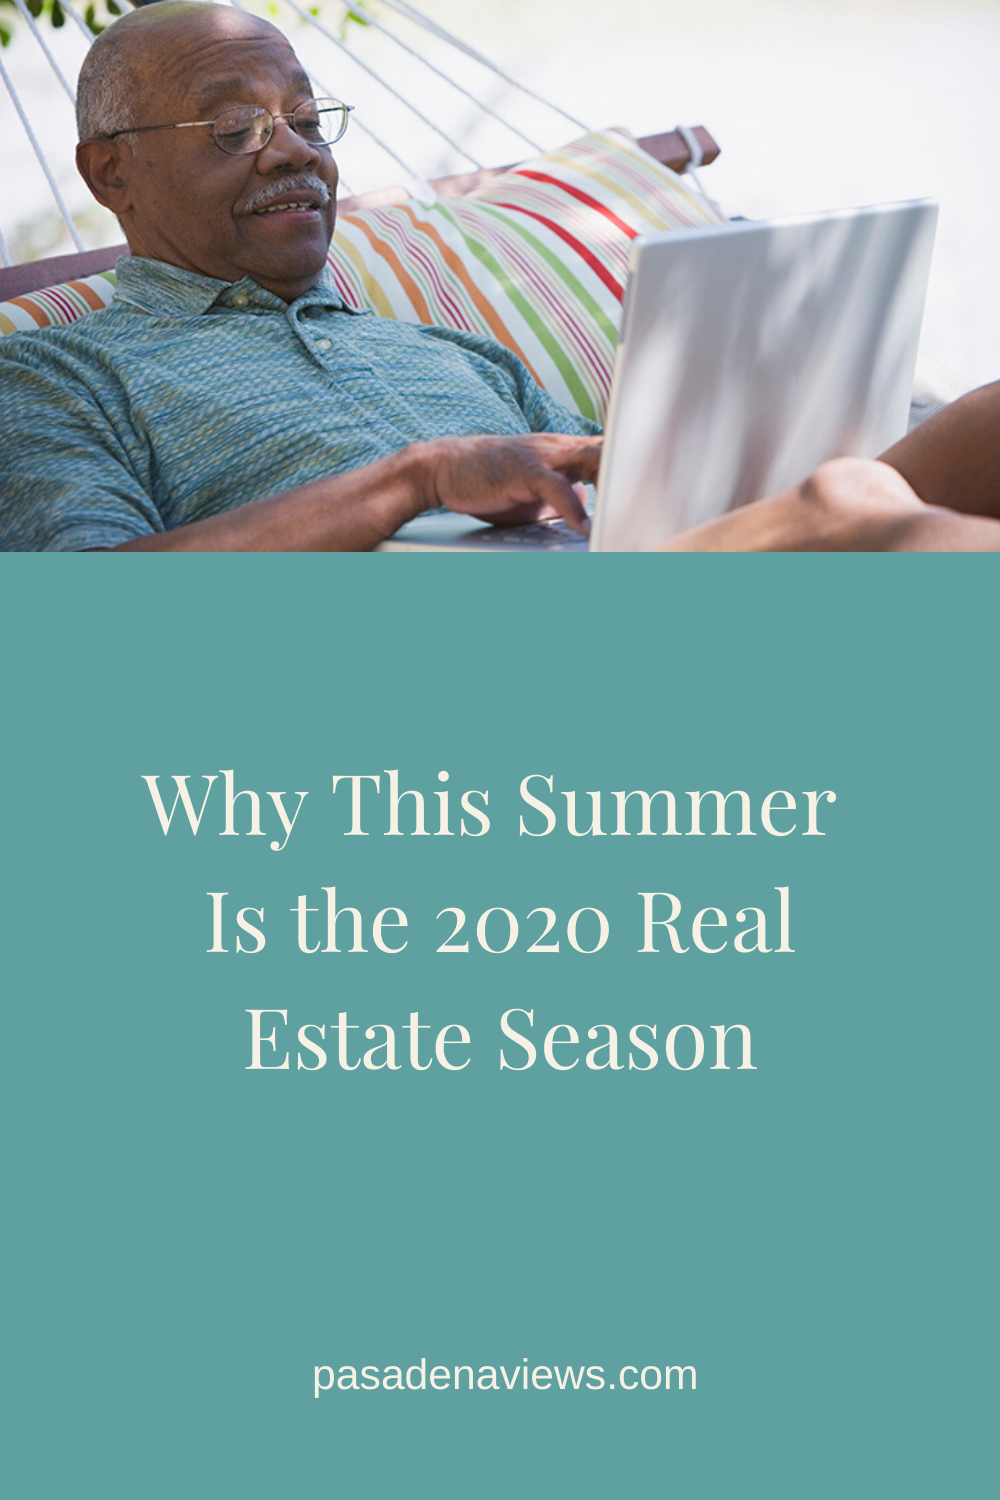 Why This Summer Is the 2020 Real Estate Season in 2020